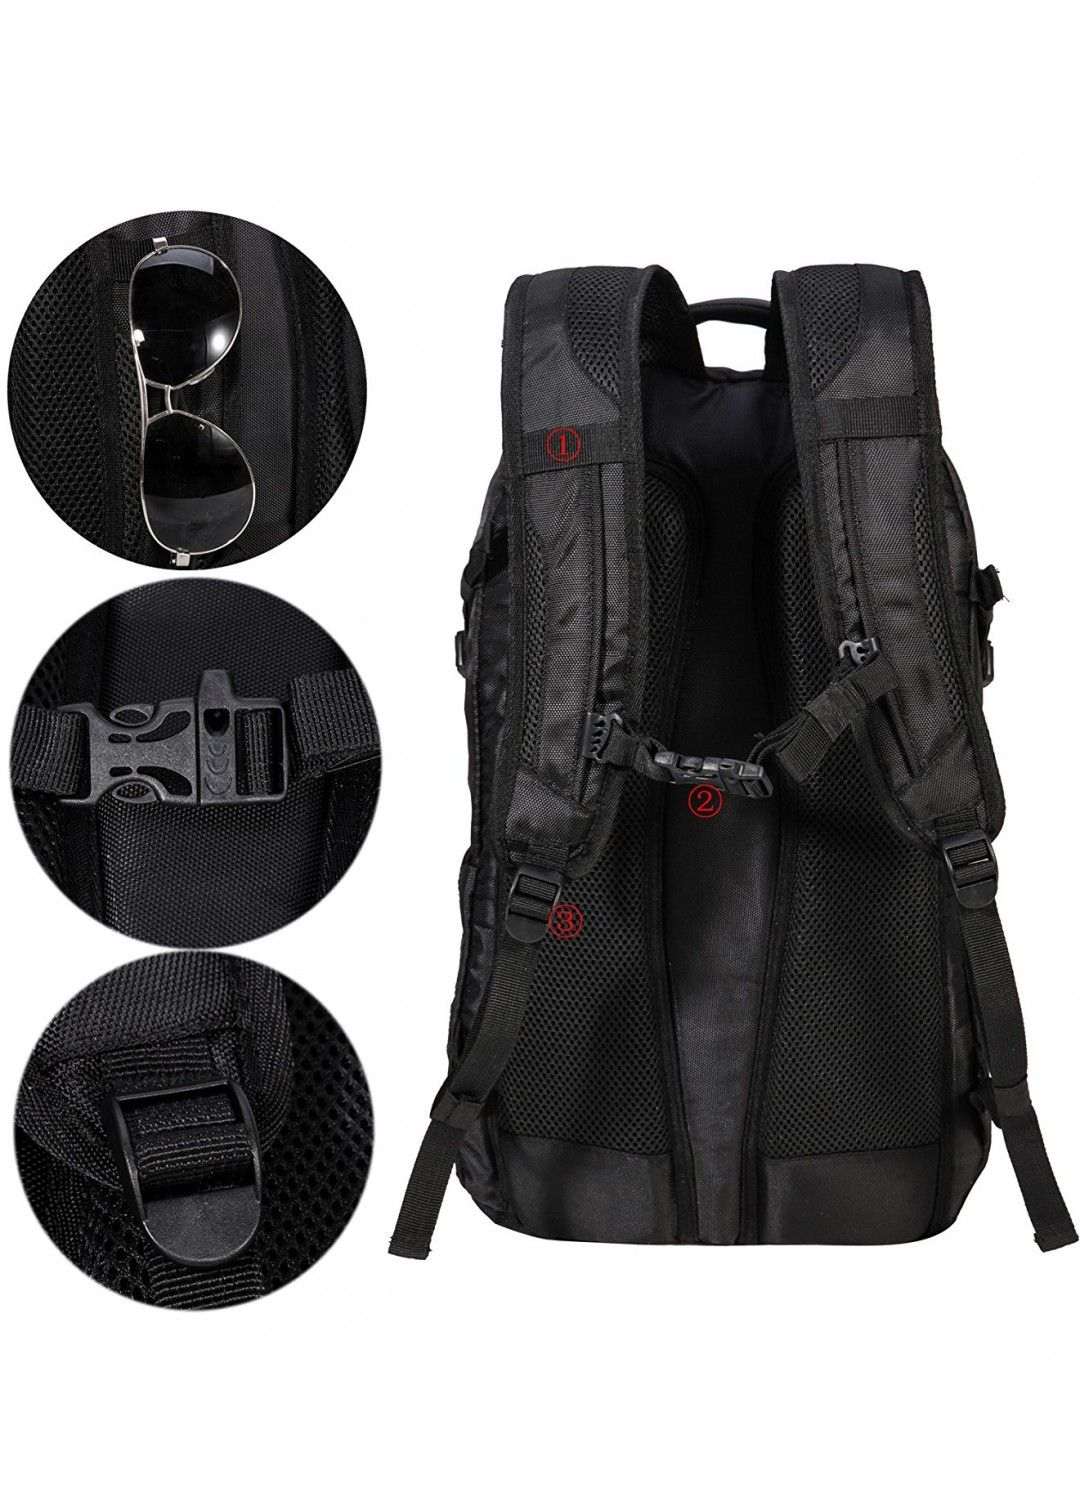 MIER Laptop Backpack Travel Daypack for Men Women School Rucksack ... 9a674a357ecf3